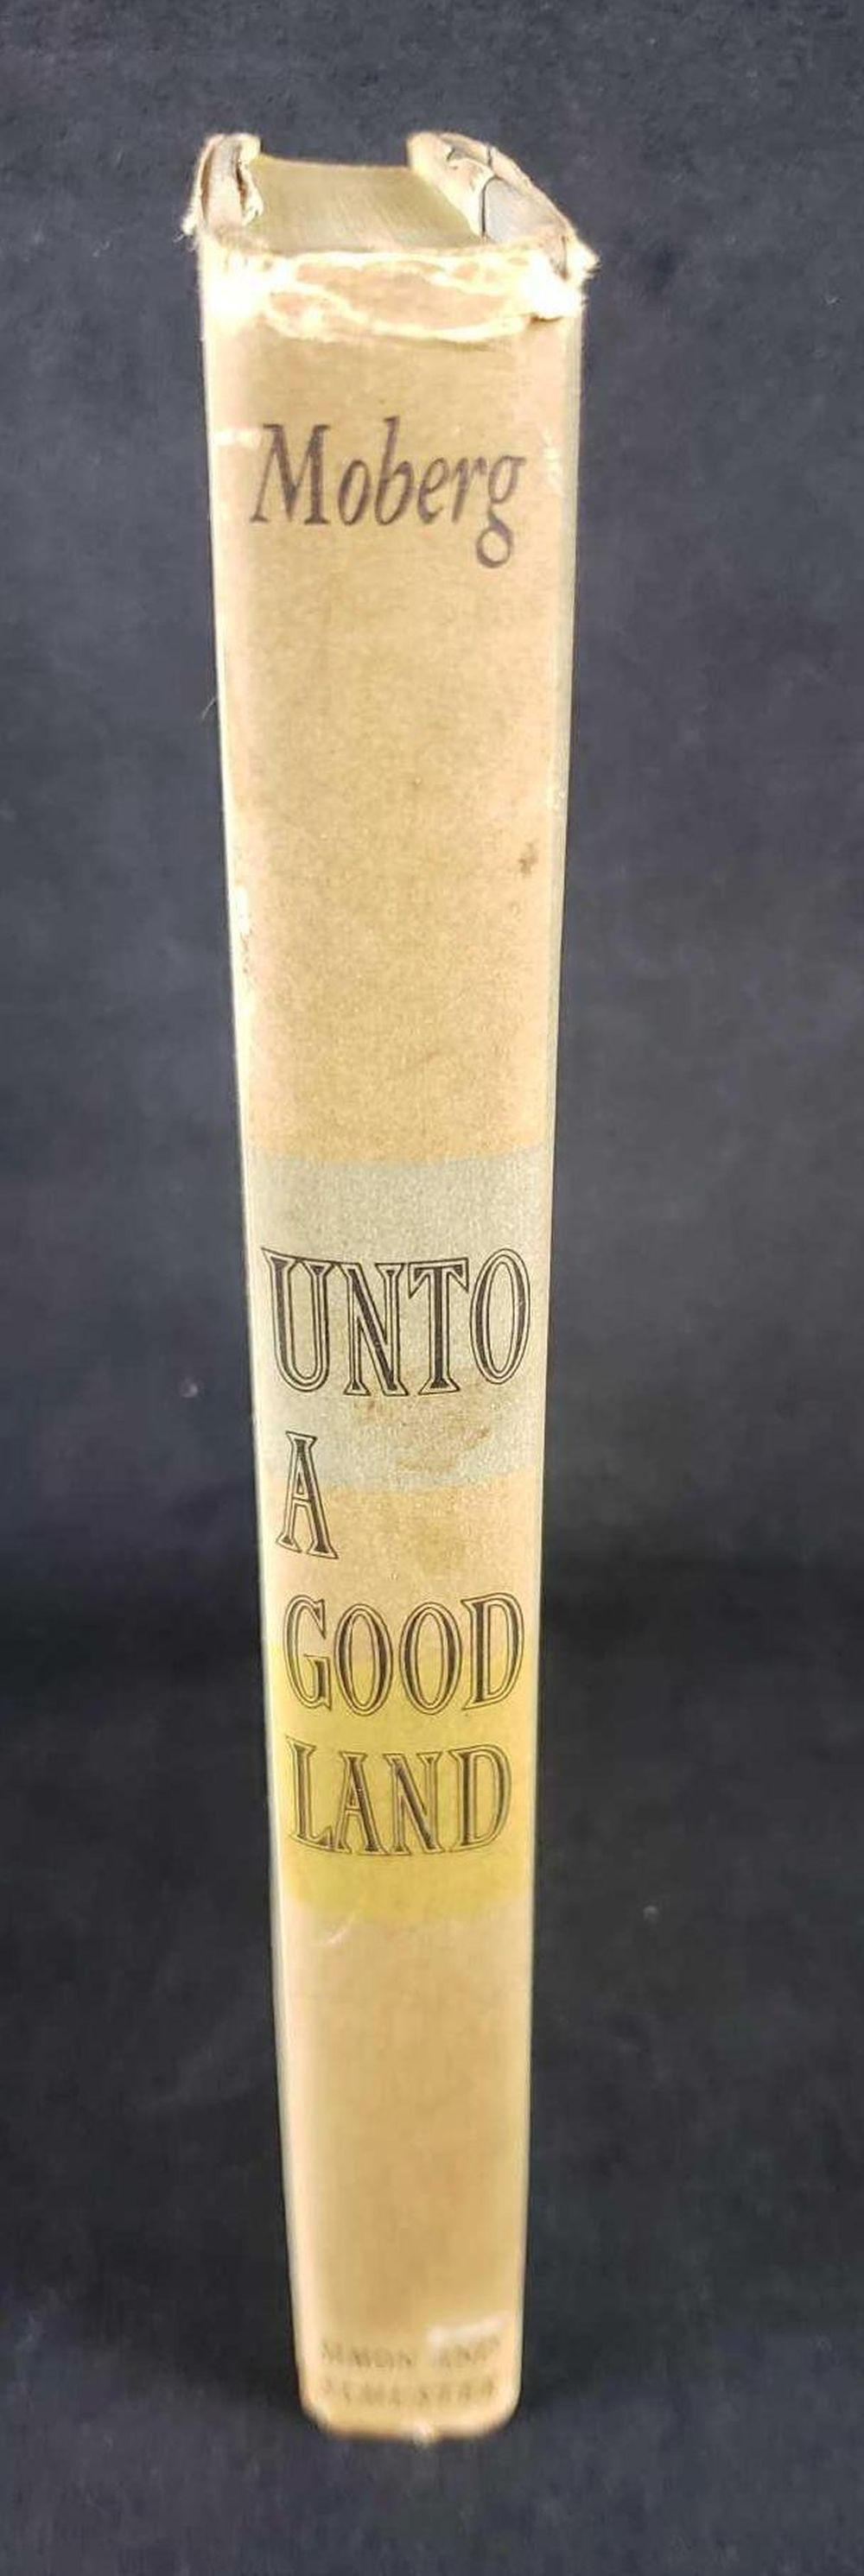 Lot 963: Unto A Good Land by Vilhelm Moberg Copyright 1954 Vintage Hardcover Book